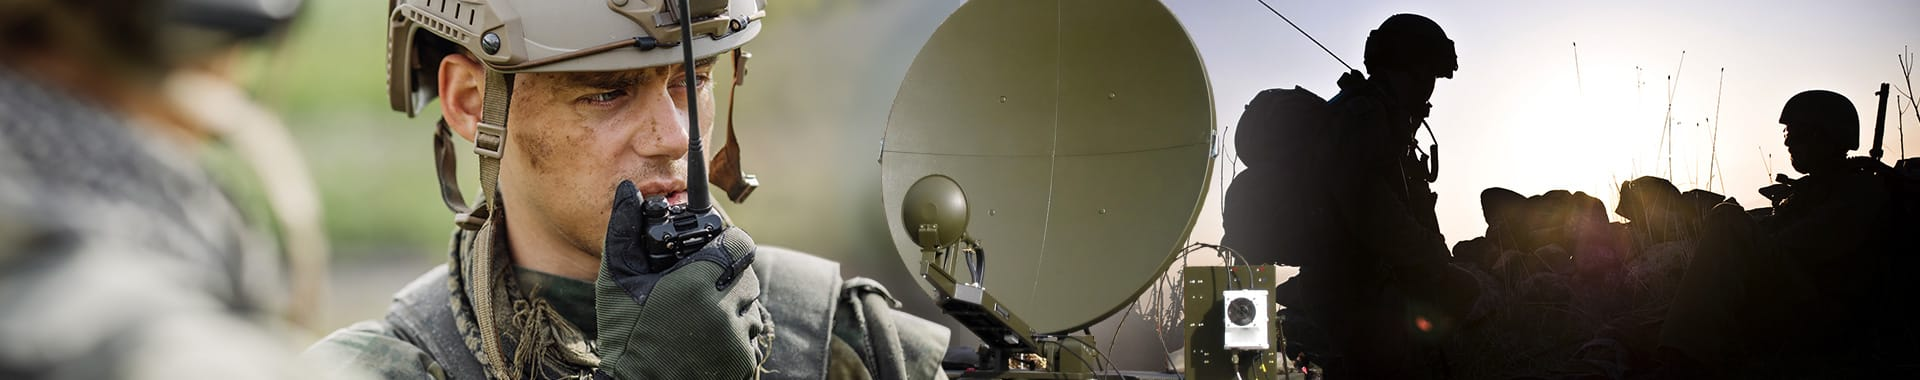 Montage showing a soldier speaking into a radio, a comms dish and soldier with a wireless pack - conveying the Government and Defense market